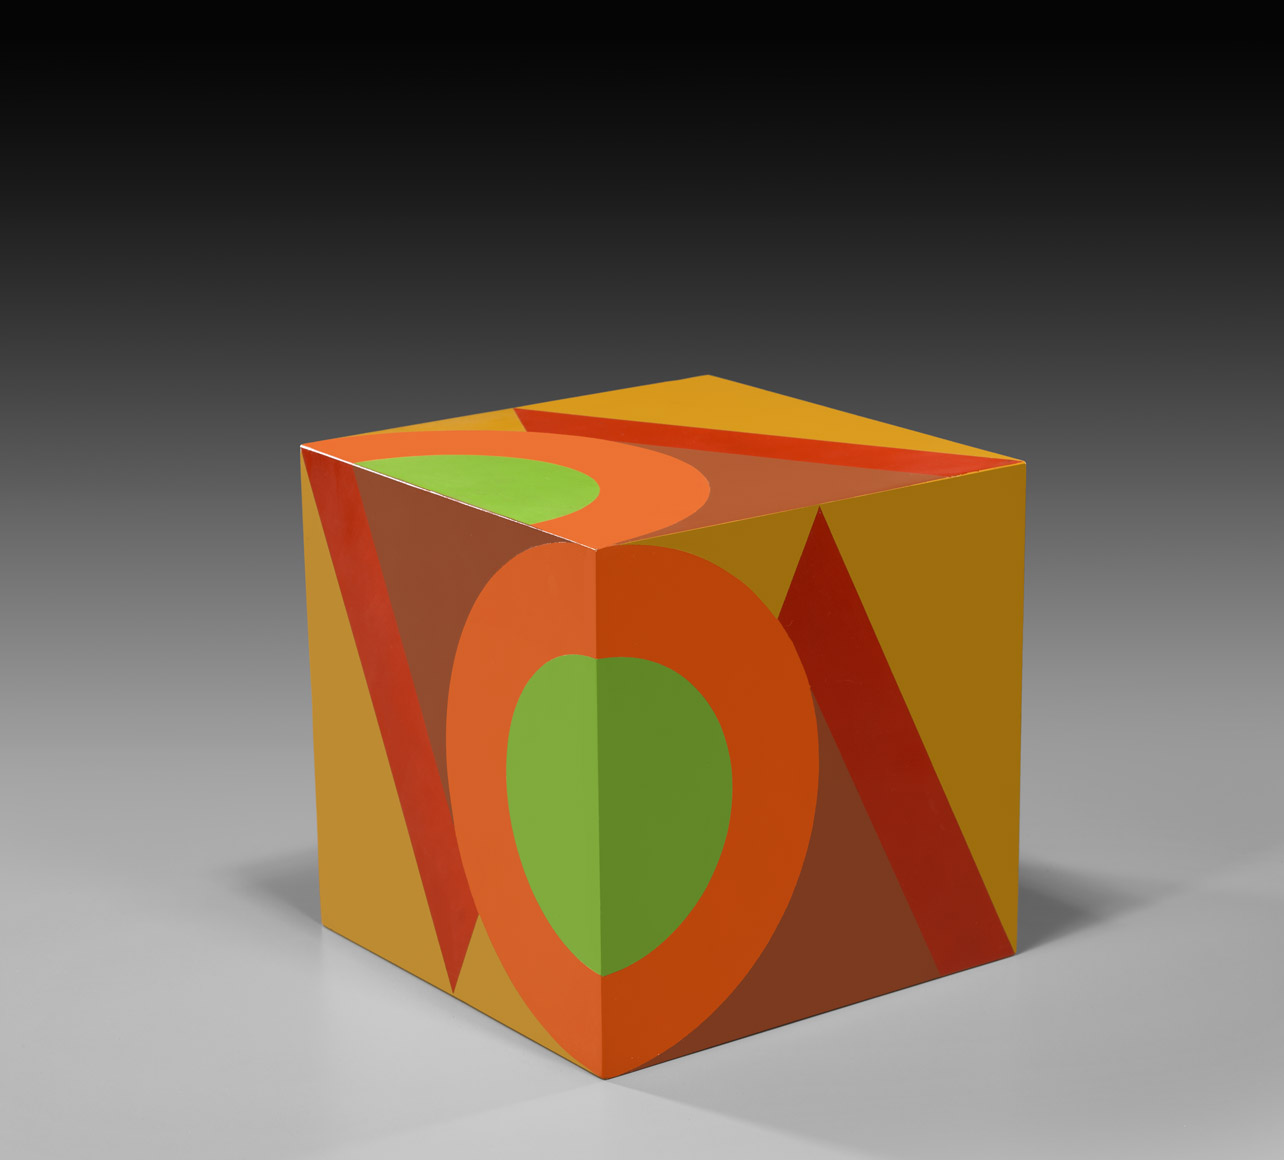 untitled cube (camel background VC) , 1984  oil on wood 10 x 10 x 10 inches; 25.4 x 25.4 x 25.4 centimeters